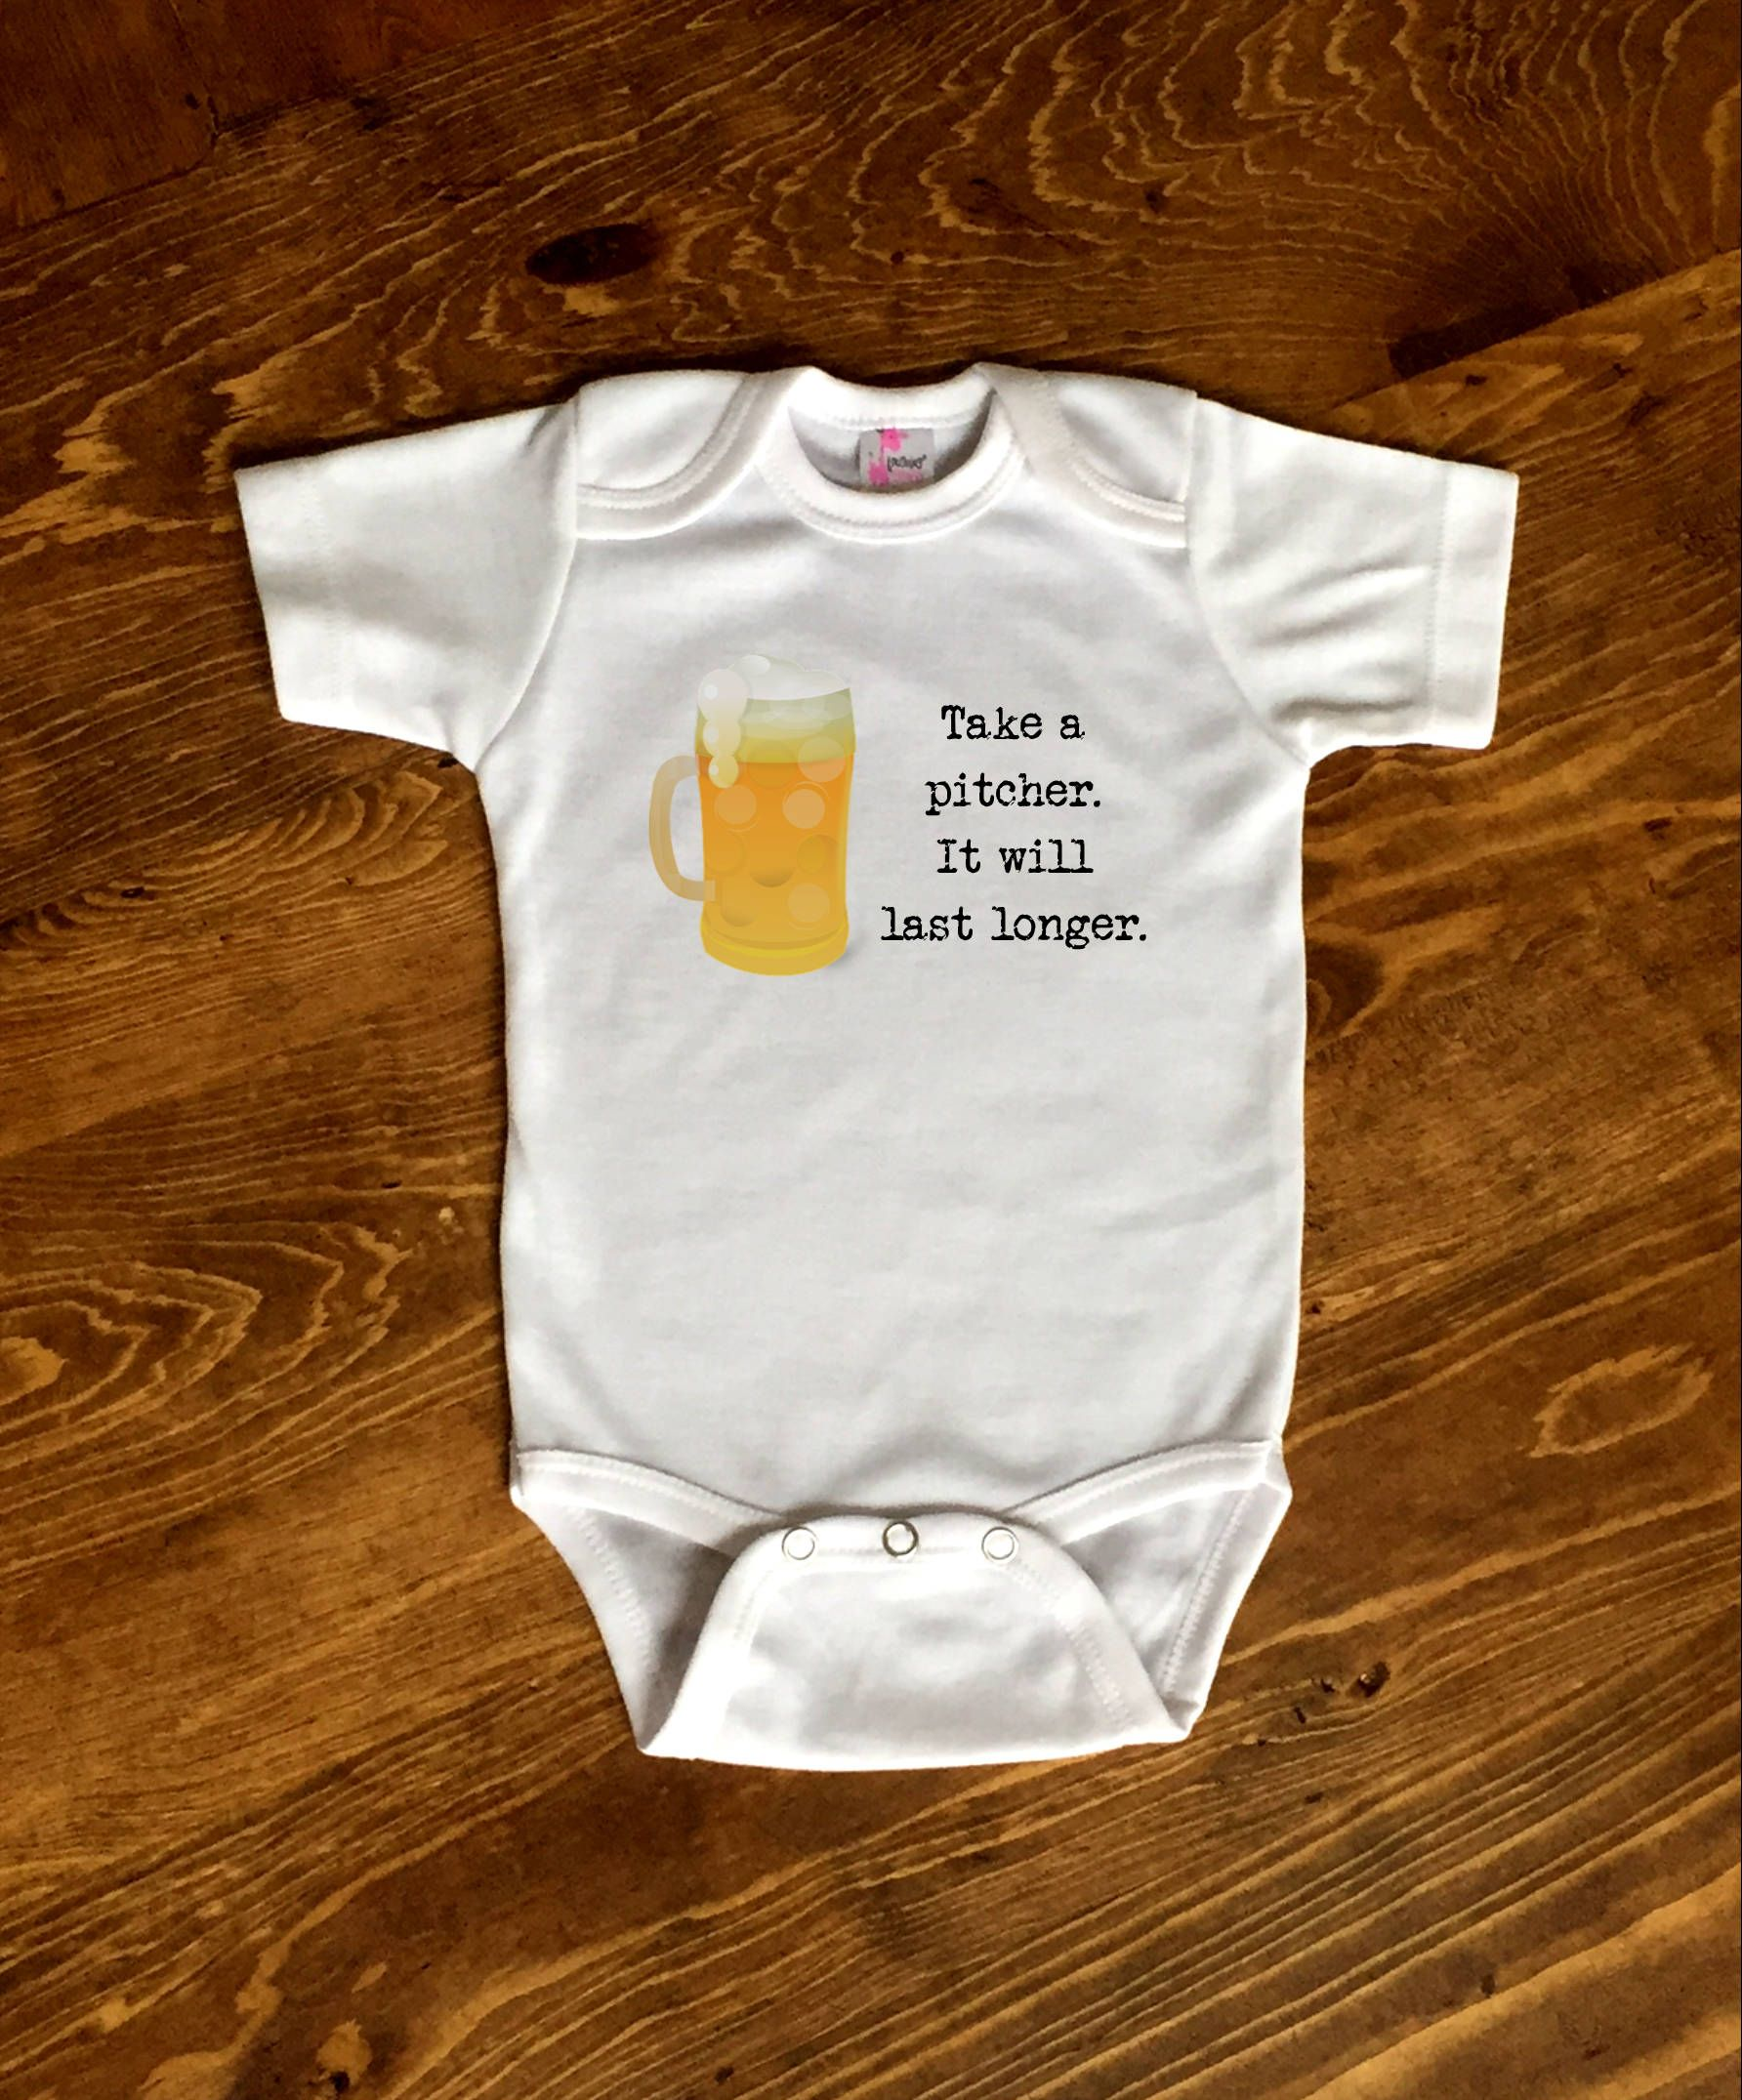 b94710a57 Beer Baby Shirt, Take A Pitcher, Beer Baby Shower, Beer Baby Gift, Daddys  Drinking Buddy, Craft Beer Baby, Drinking for Two Hoppy Beer Shirt by ...